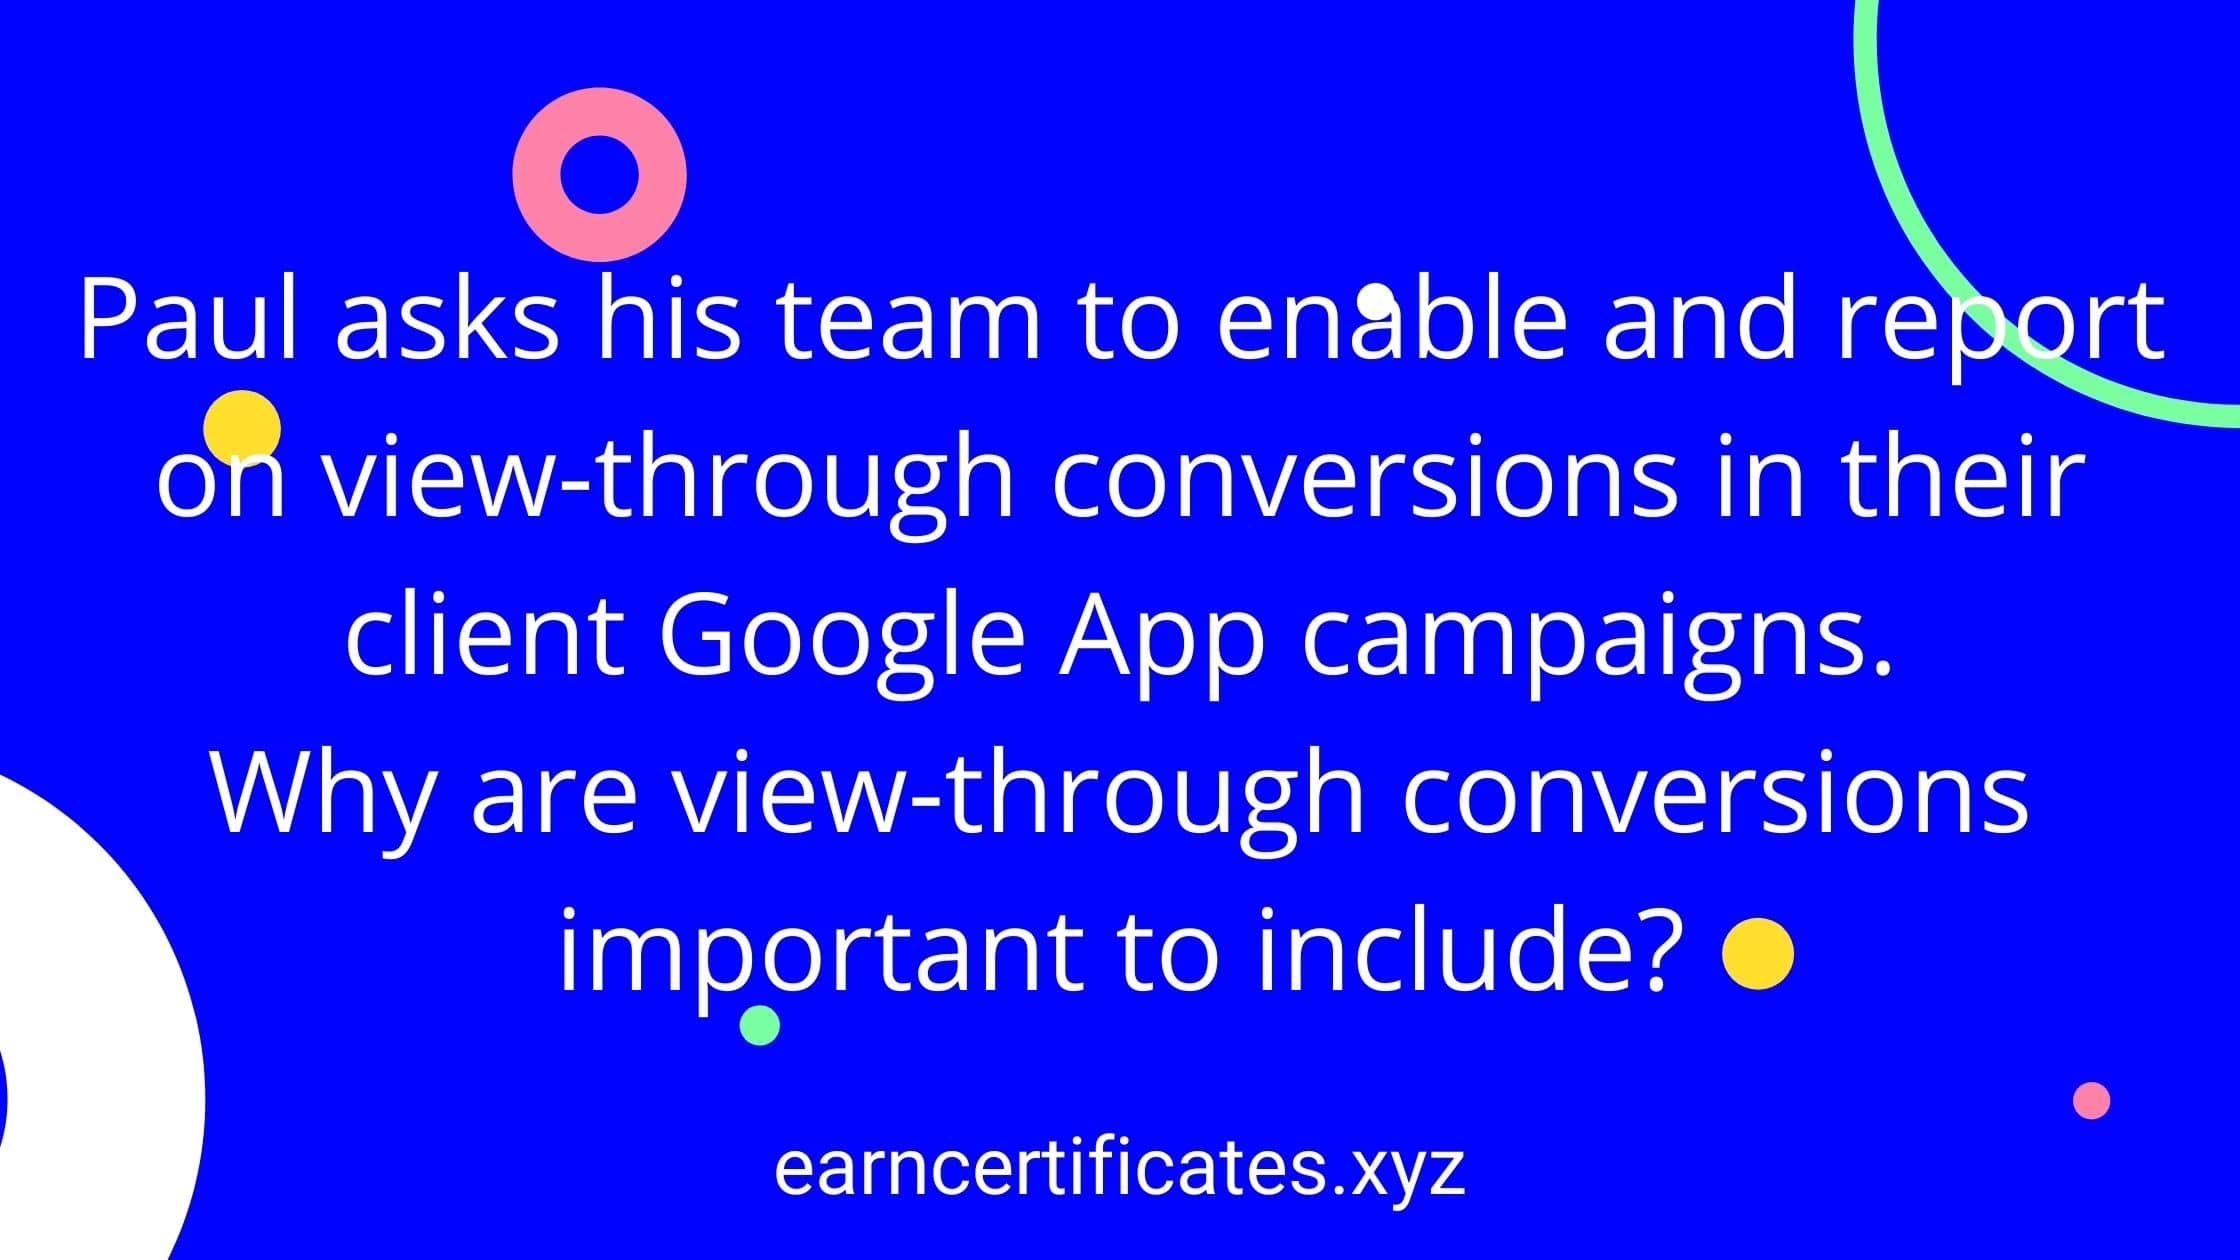 Paul asks his team to enable and report on view-through conversions in their client Google App campaigns. Why are view-through conversions important to include?